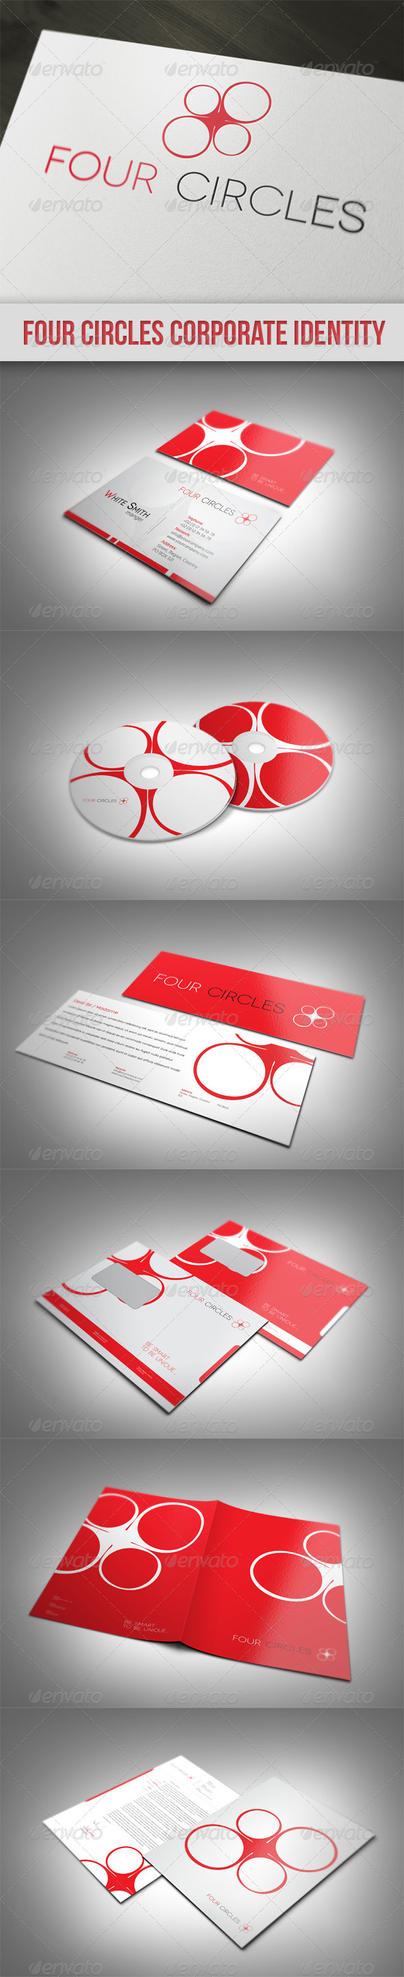 Four Circles Corporate Identity by UnicoDesign